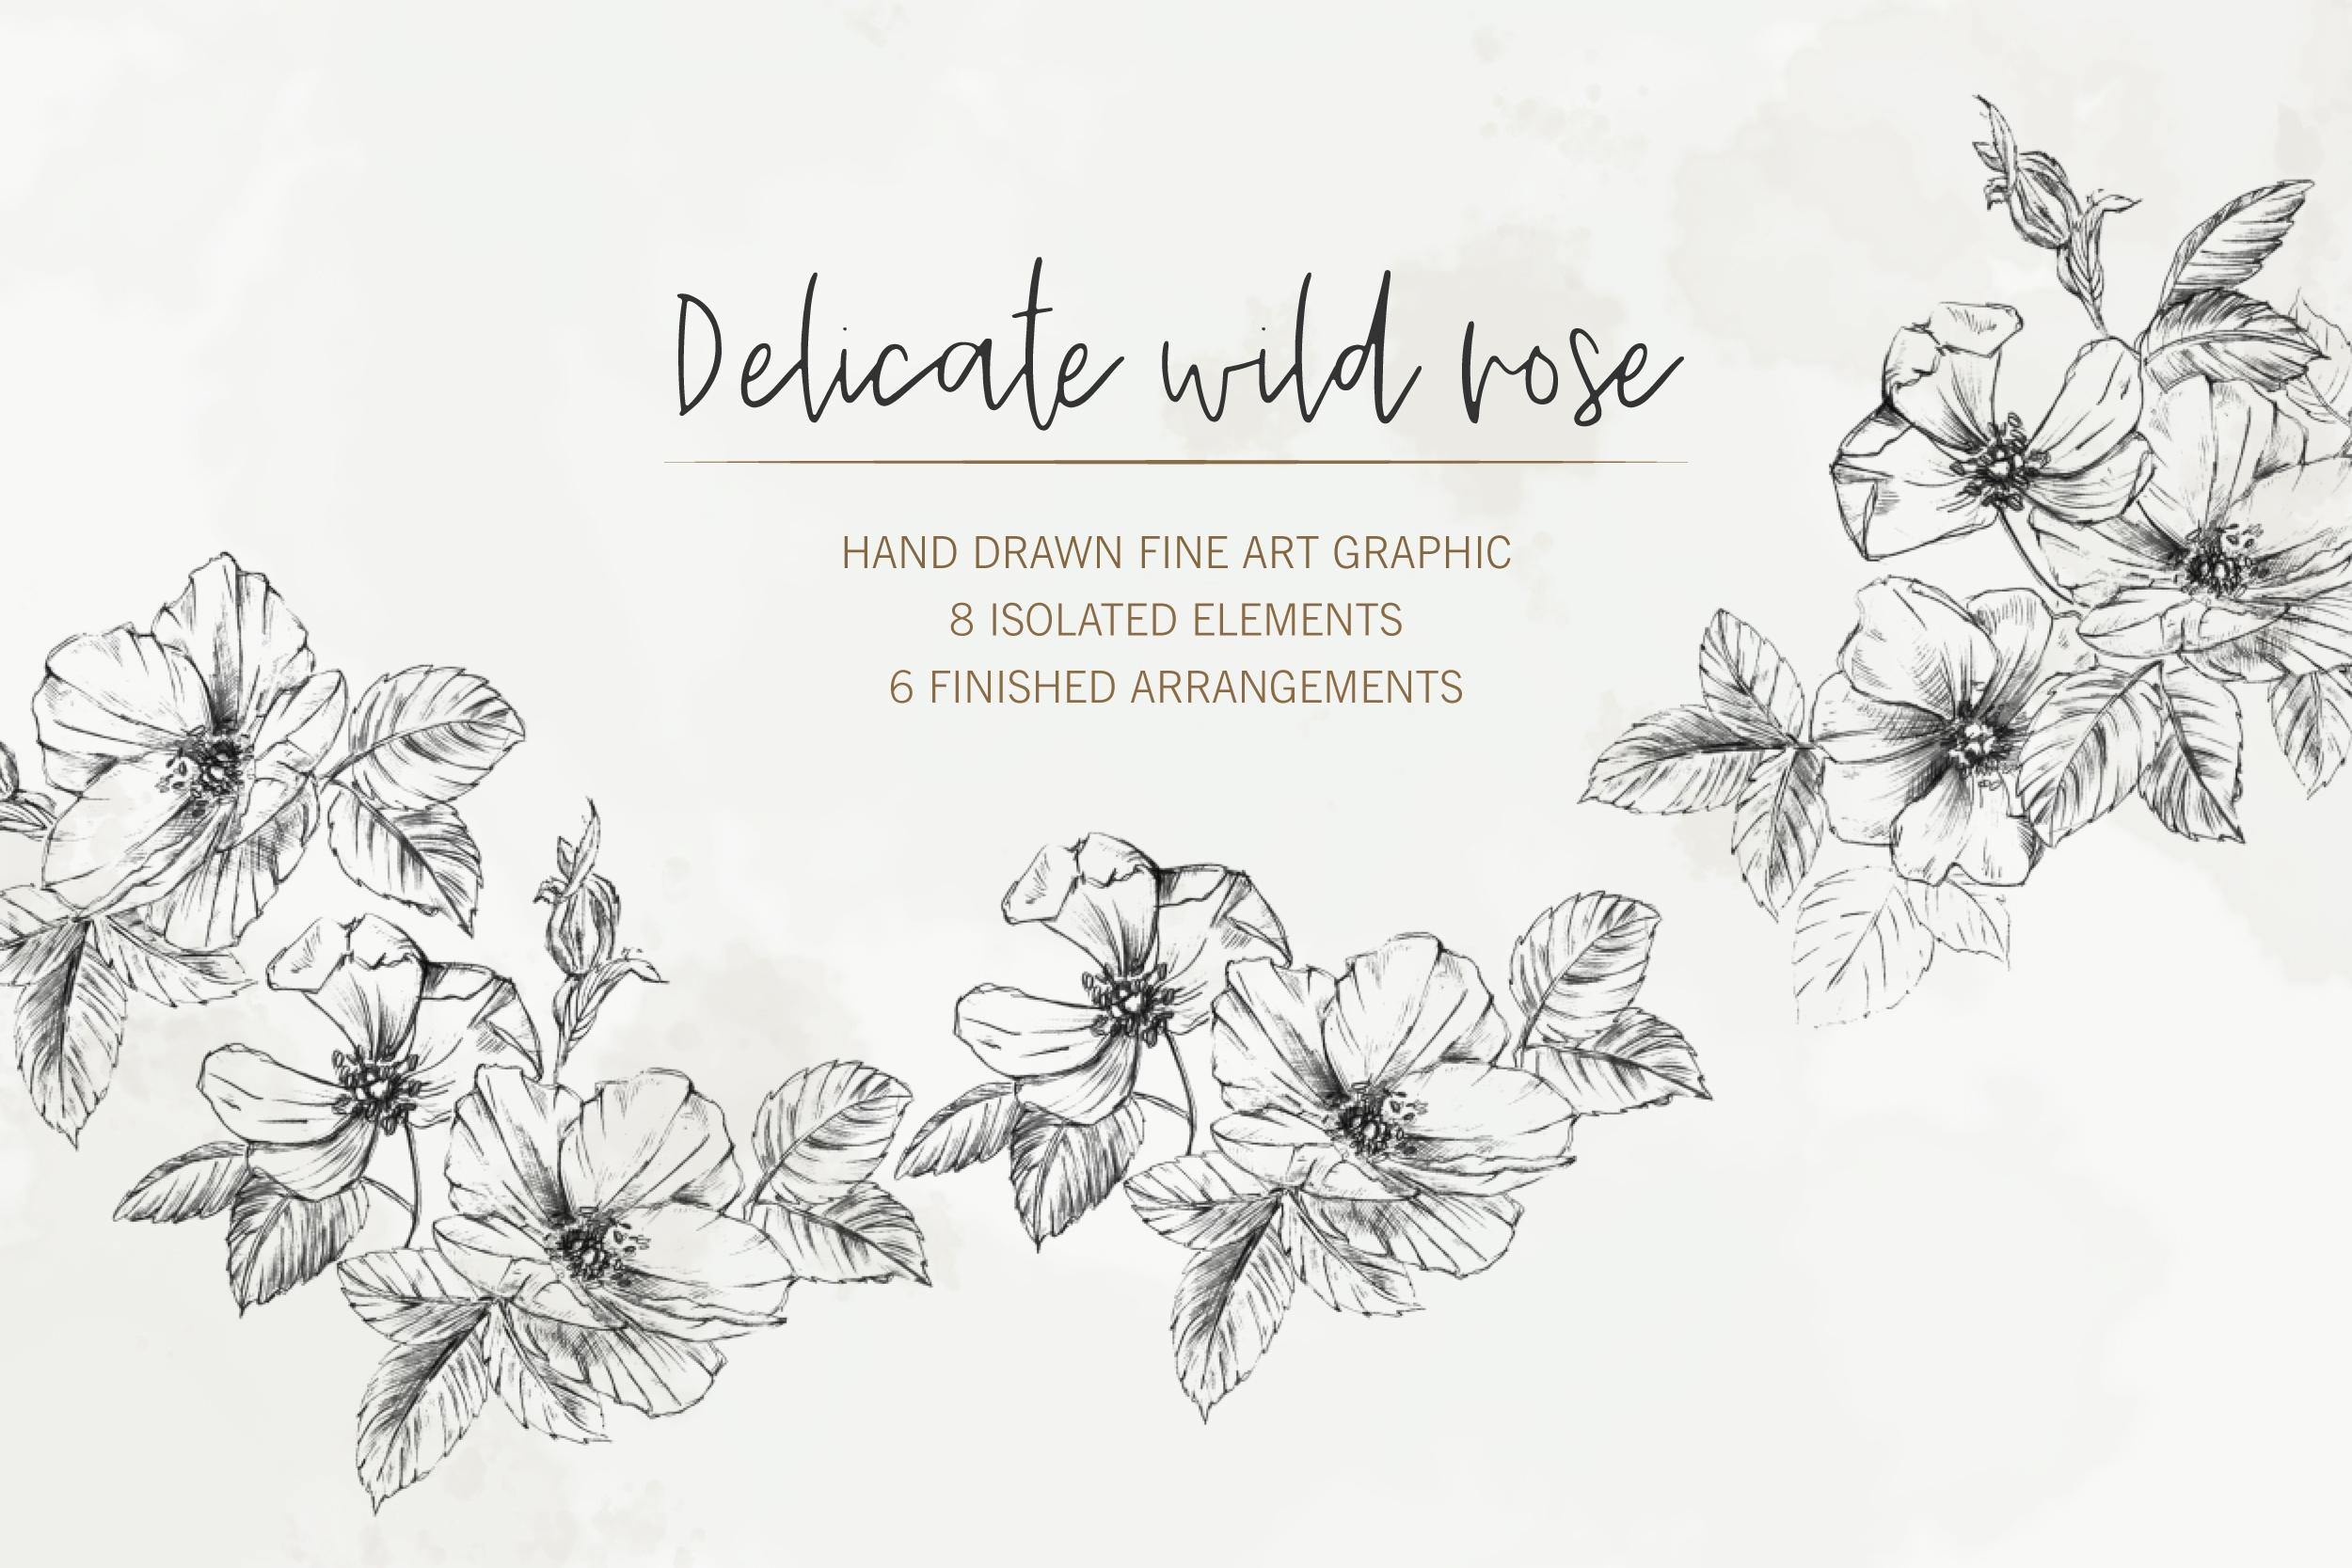 Hand Drawn Fine Art Graphic Images - Delicate wild rose. example image 1